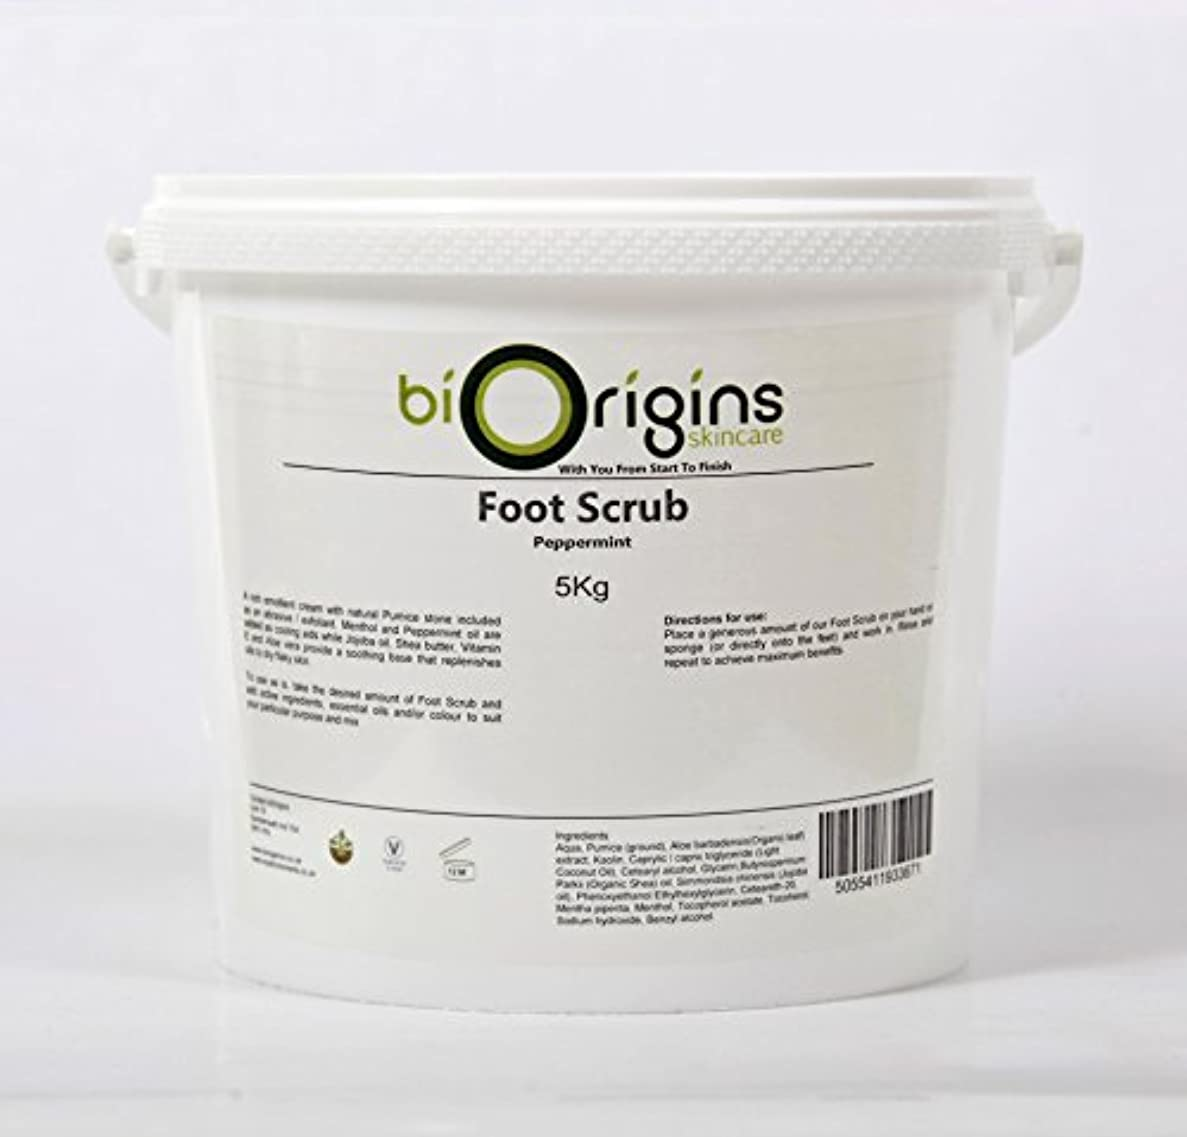 追うレジサンダースFoot Scrub Peppermint - Botanical Skincare Base - 5Kg